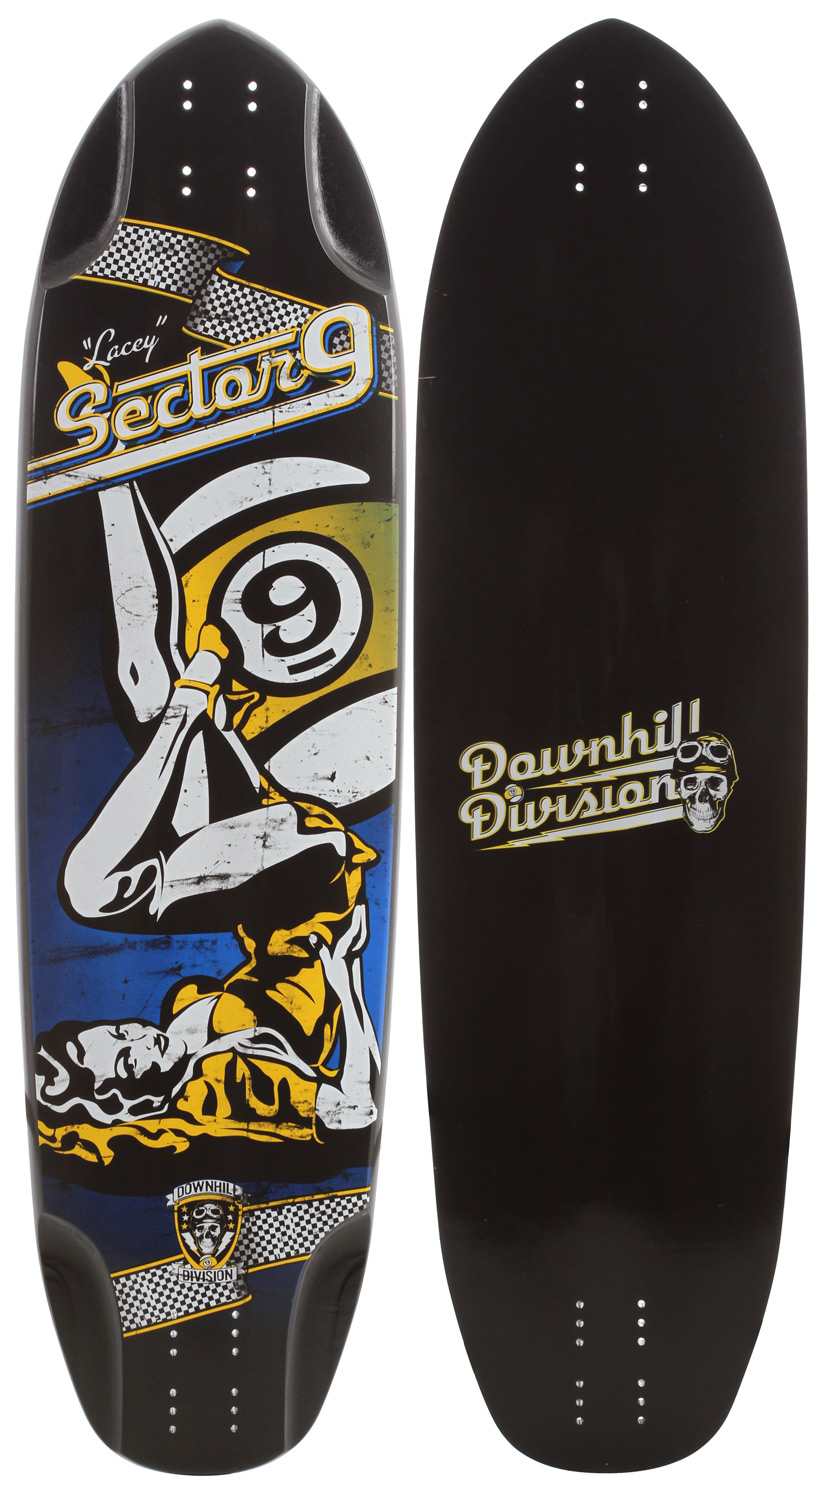 "Longboarding Key Features of the Sector 9 Lacey Downhill Division Longboard Skateboard: Mellow Concave Grip with Printed Graphic 8 Ply Maple Construction Length (in): 38.0 Width (in): 10.5 Sector 9 ""Race Concave"" CNC Precision Cut Wheel Wells - $99.95"